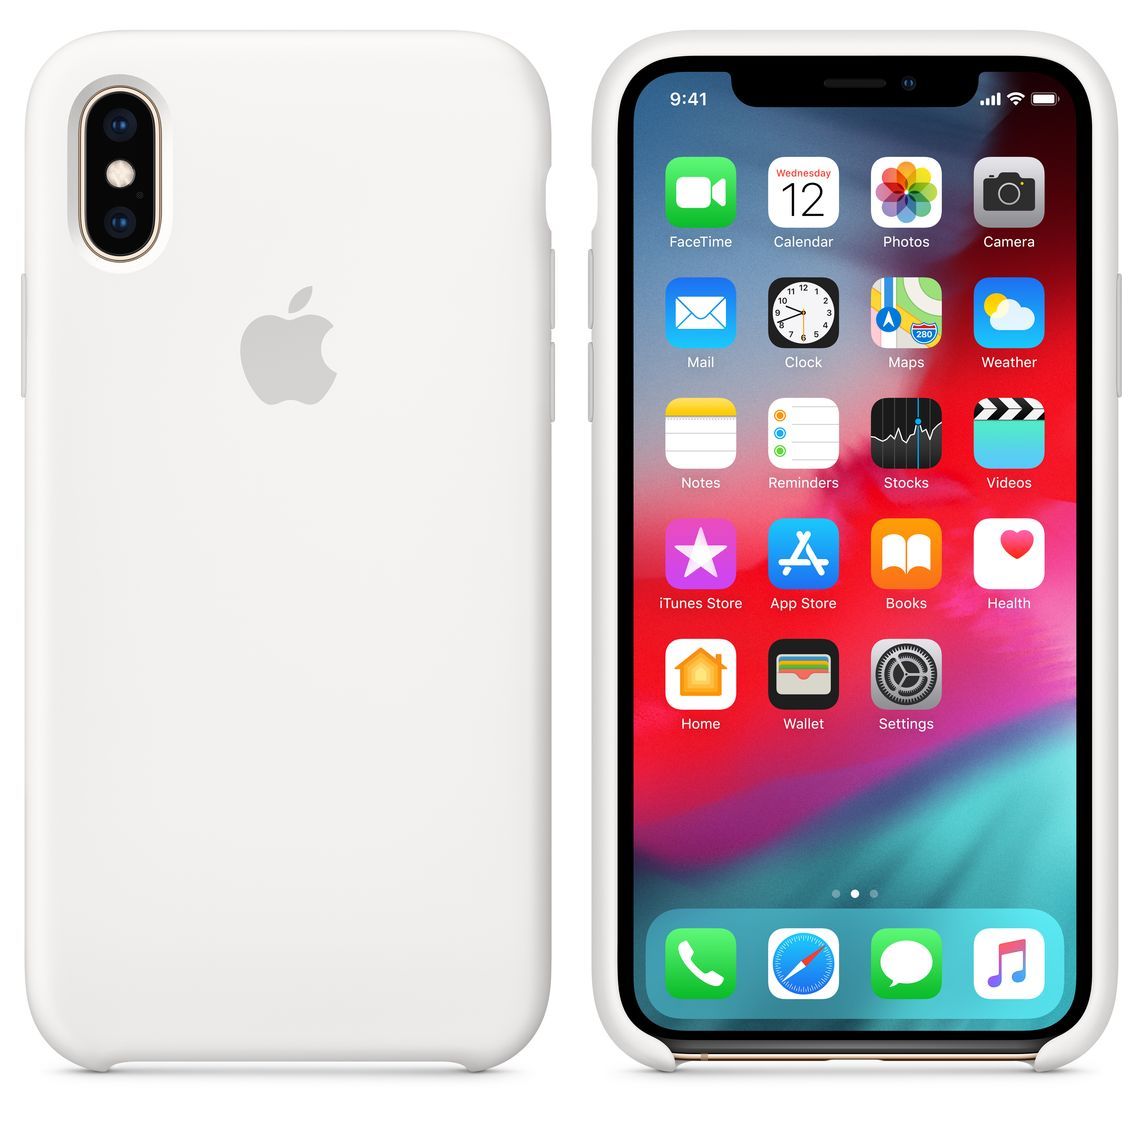 APPLE - Cover in Silicone per iPhone X Colore Bianco - ePRICE